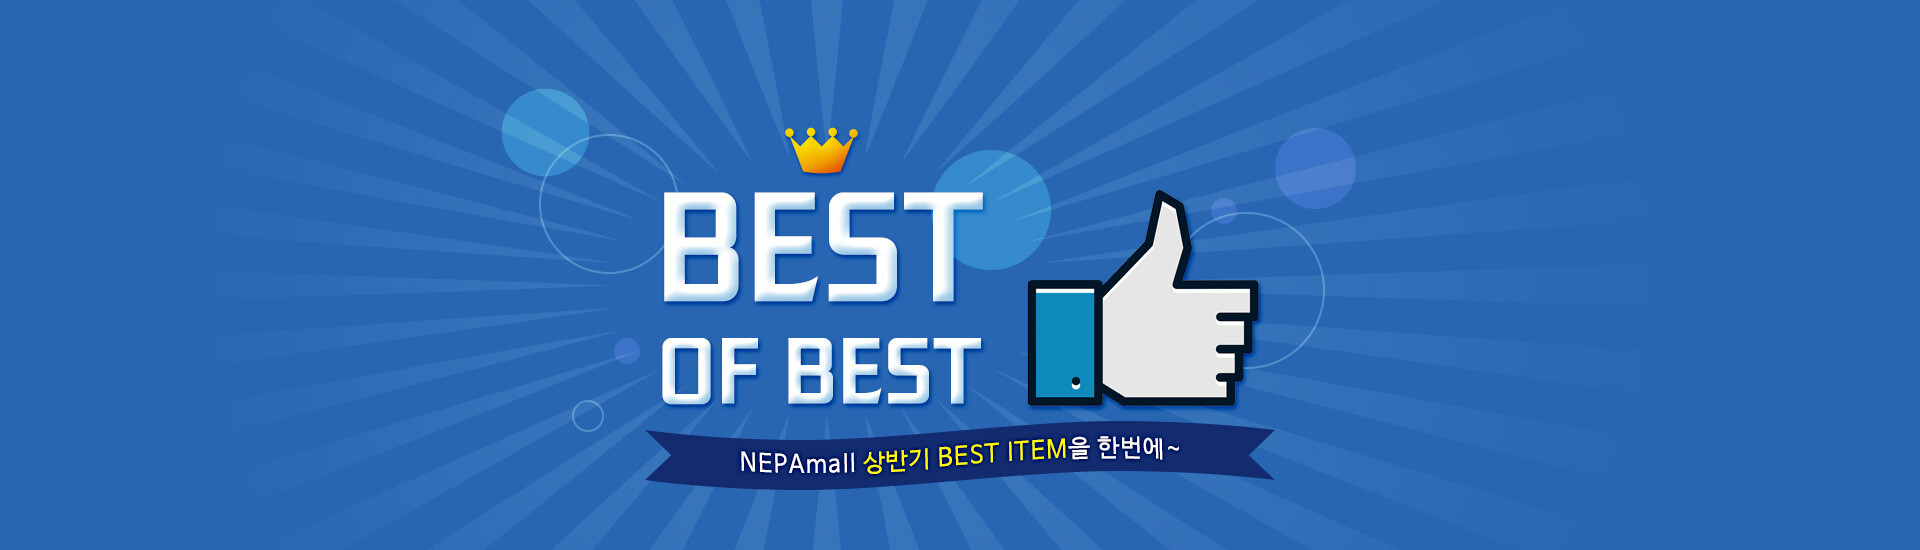 19년 상반기 NEPAmall BEST OF BEST